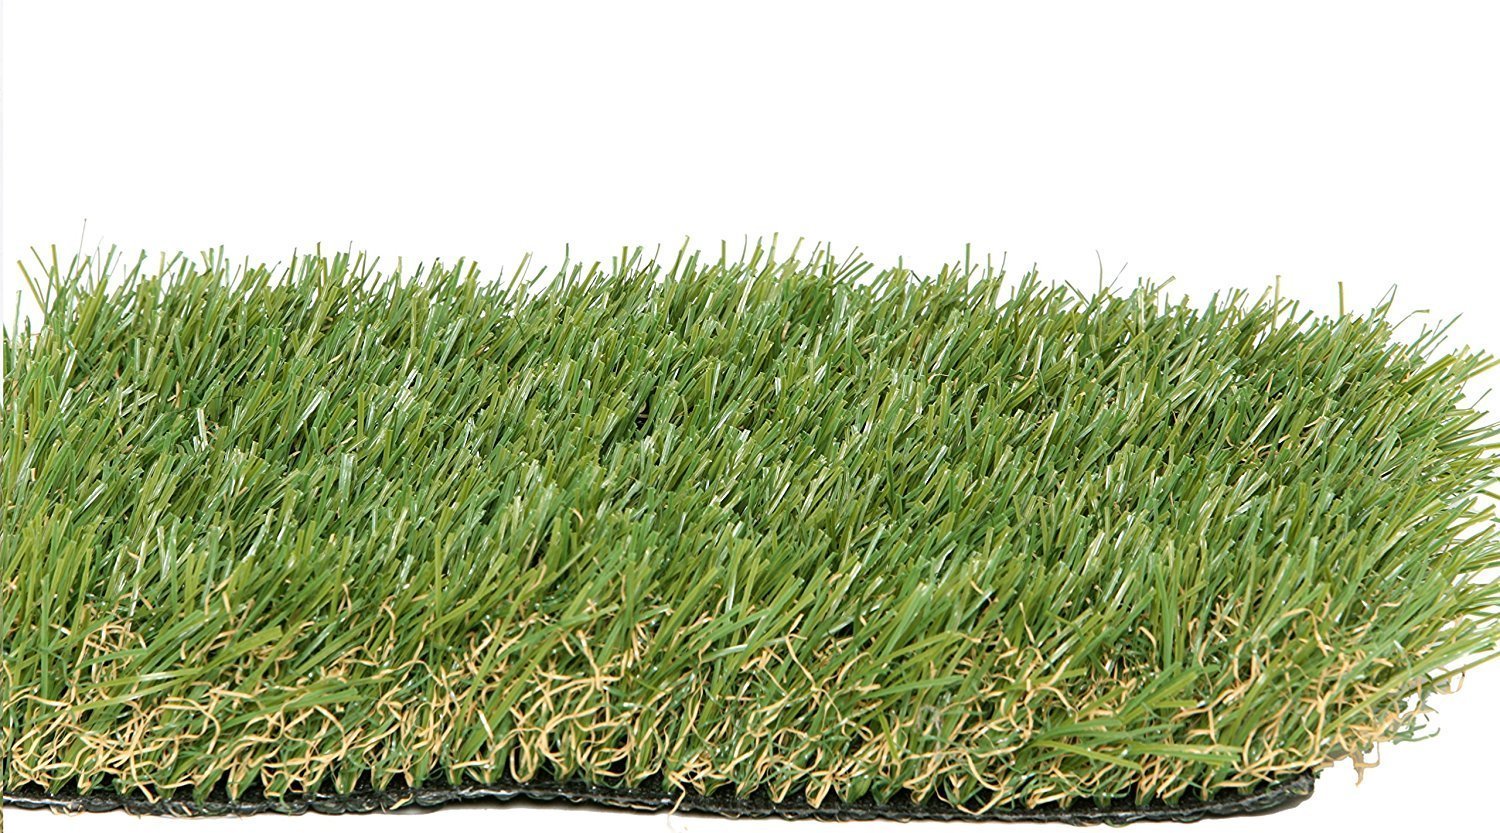 Zen Garden 5.5ft x 6.5ft x Artificial Patch 4-Tone Realistic Synthetic Grass Turf, 5.5 ft x 6.5 ft = 35.7 sq ft, Green